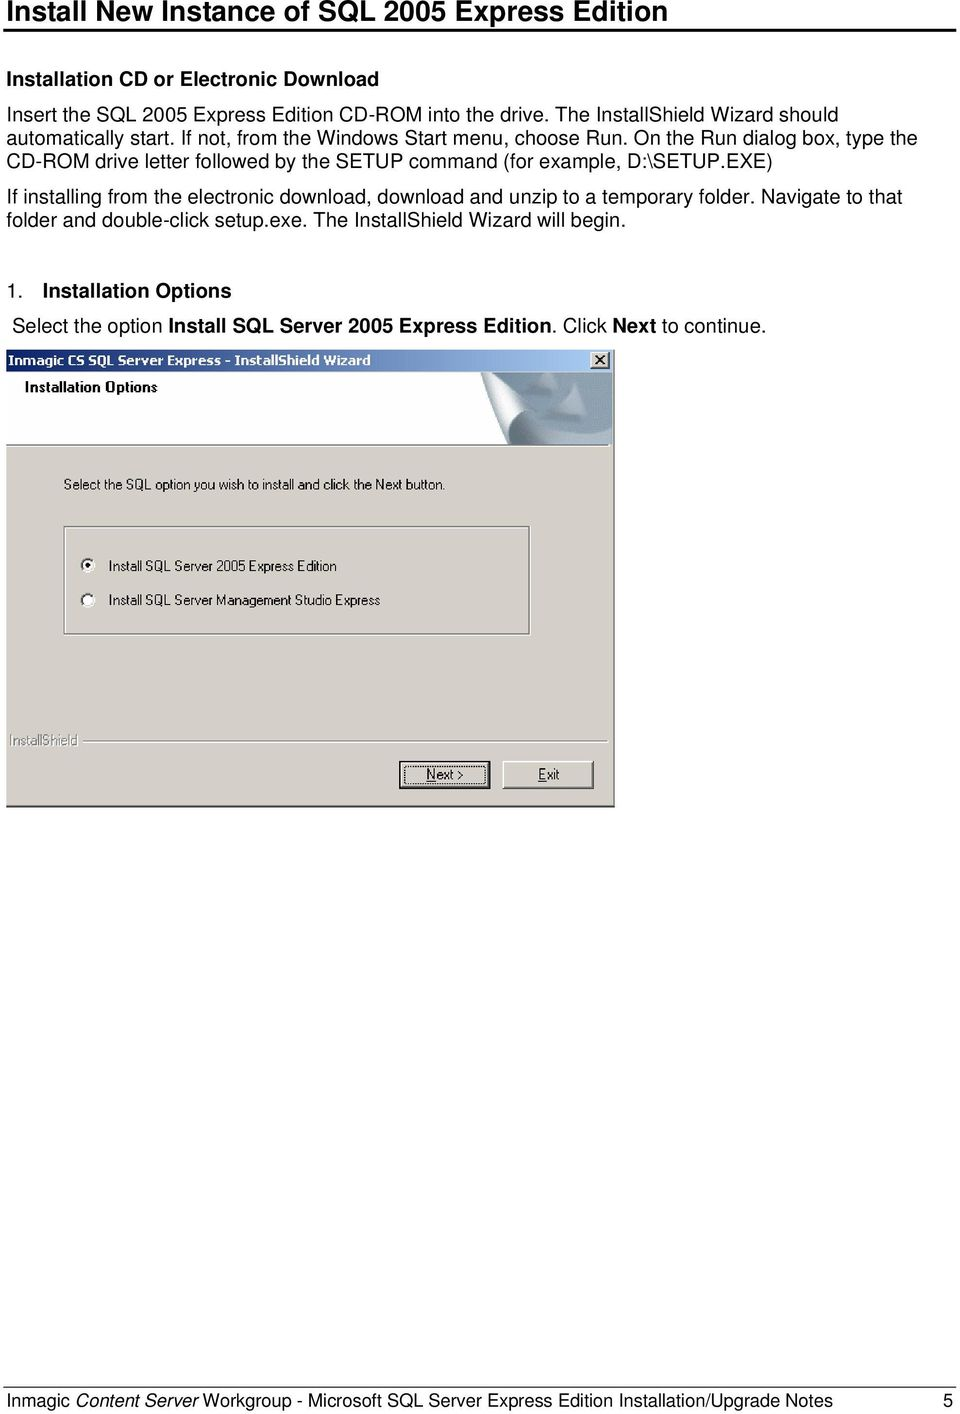 On the Run dialog box, type the CD-ROM drive letter followed by the SETUP command (for example, D:\SETUP.